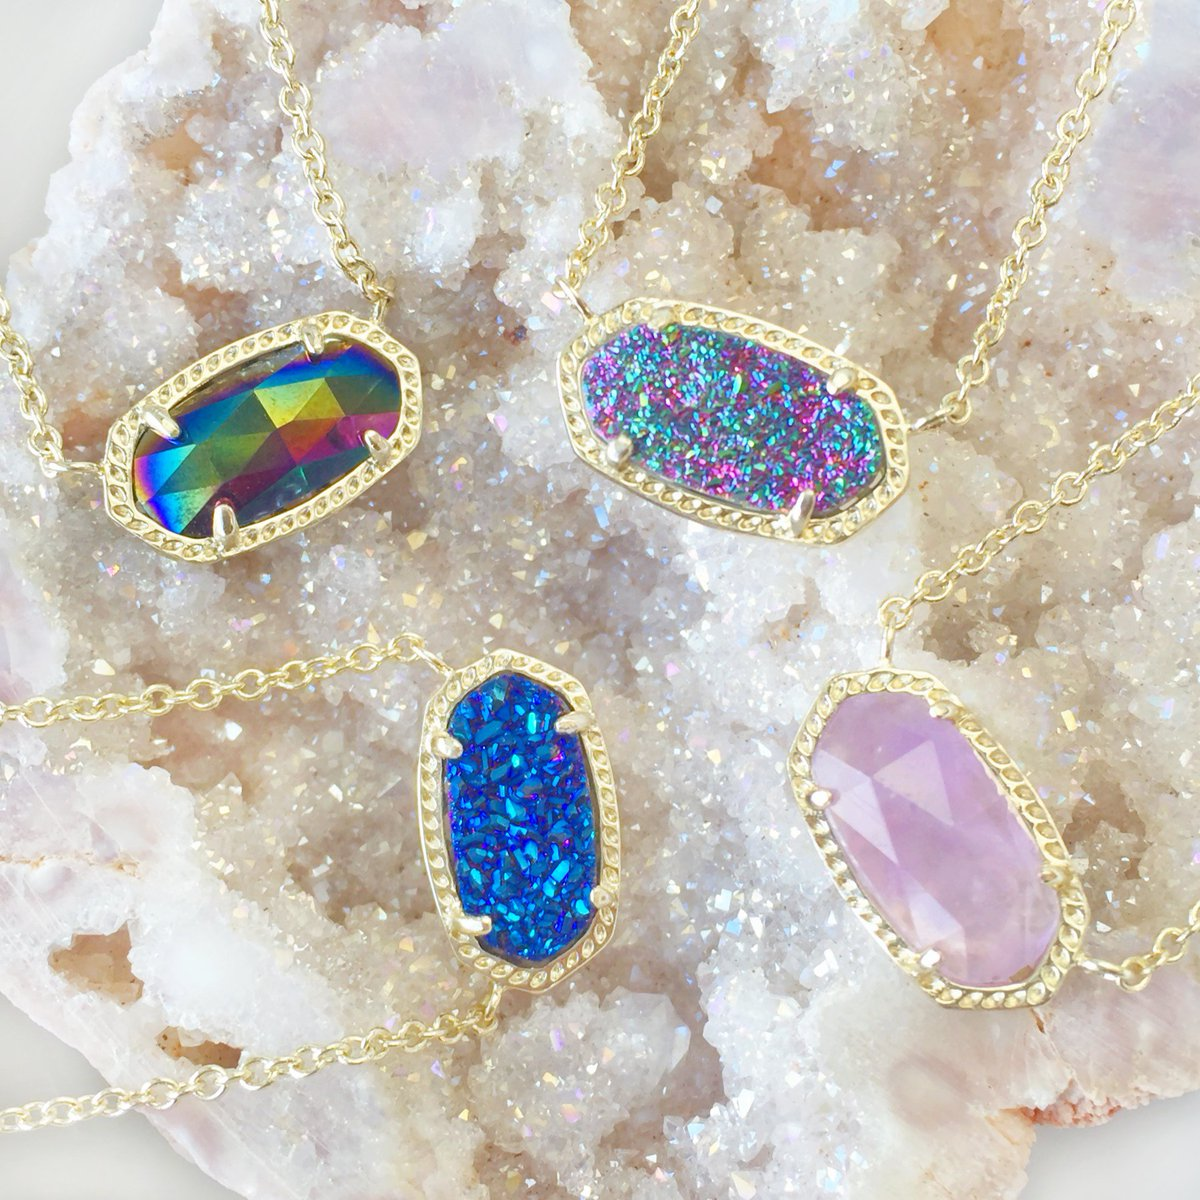 Tell us which Elisa to bring back! Retweet to vote. #MultiDrusy #BlueDrusy #Amethyst #BlackIridescent https://t.co/VDZykfK5bs